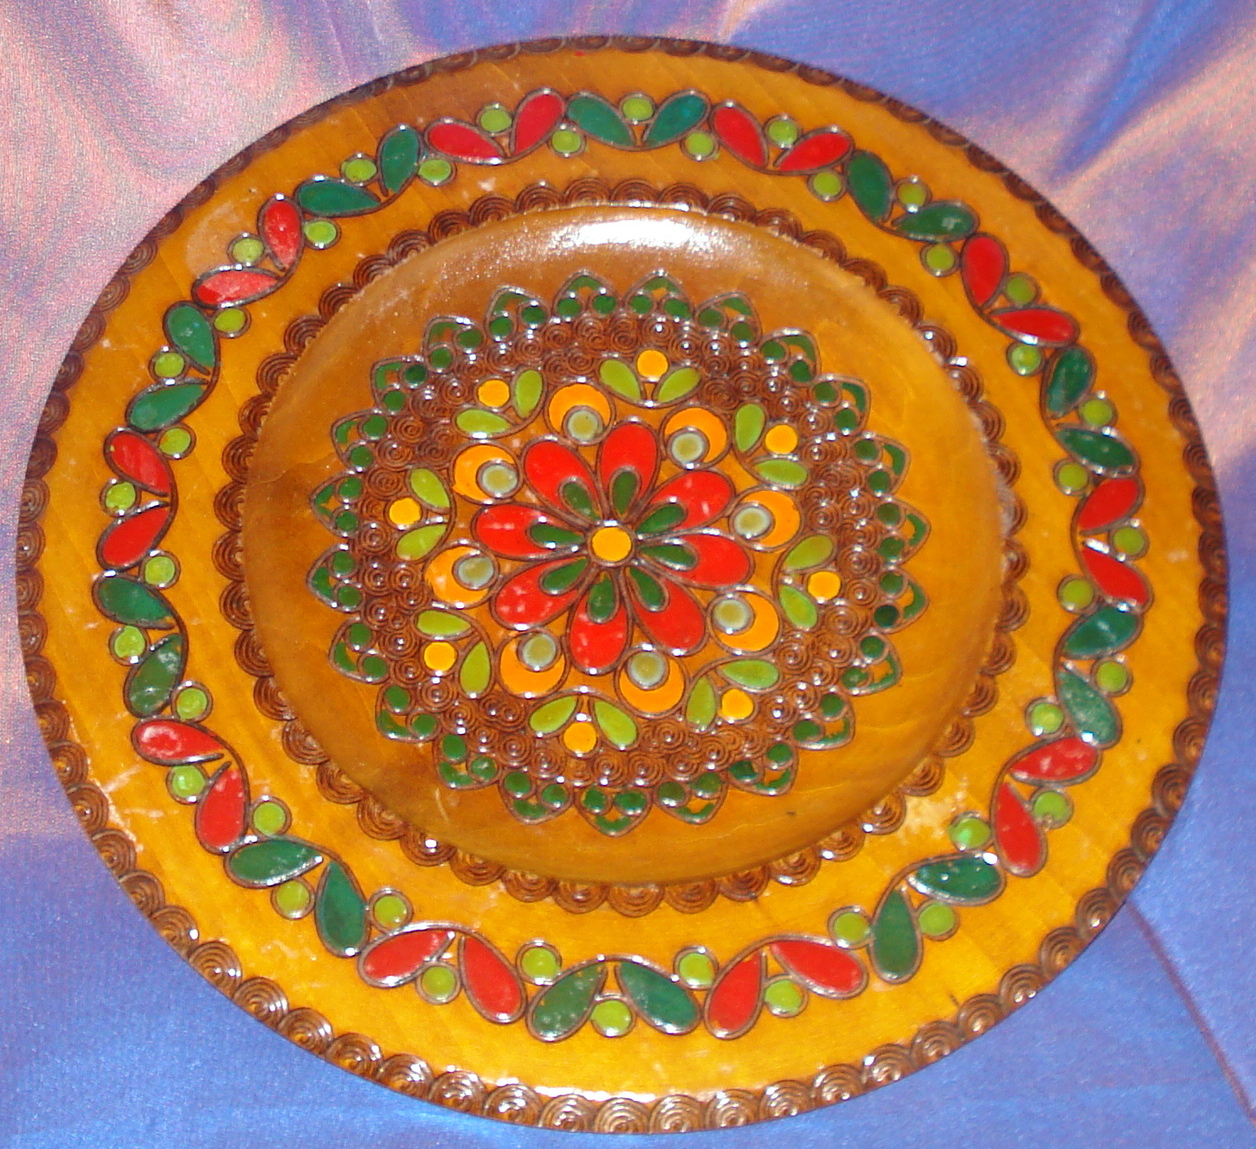 eastern european folk art